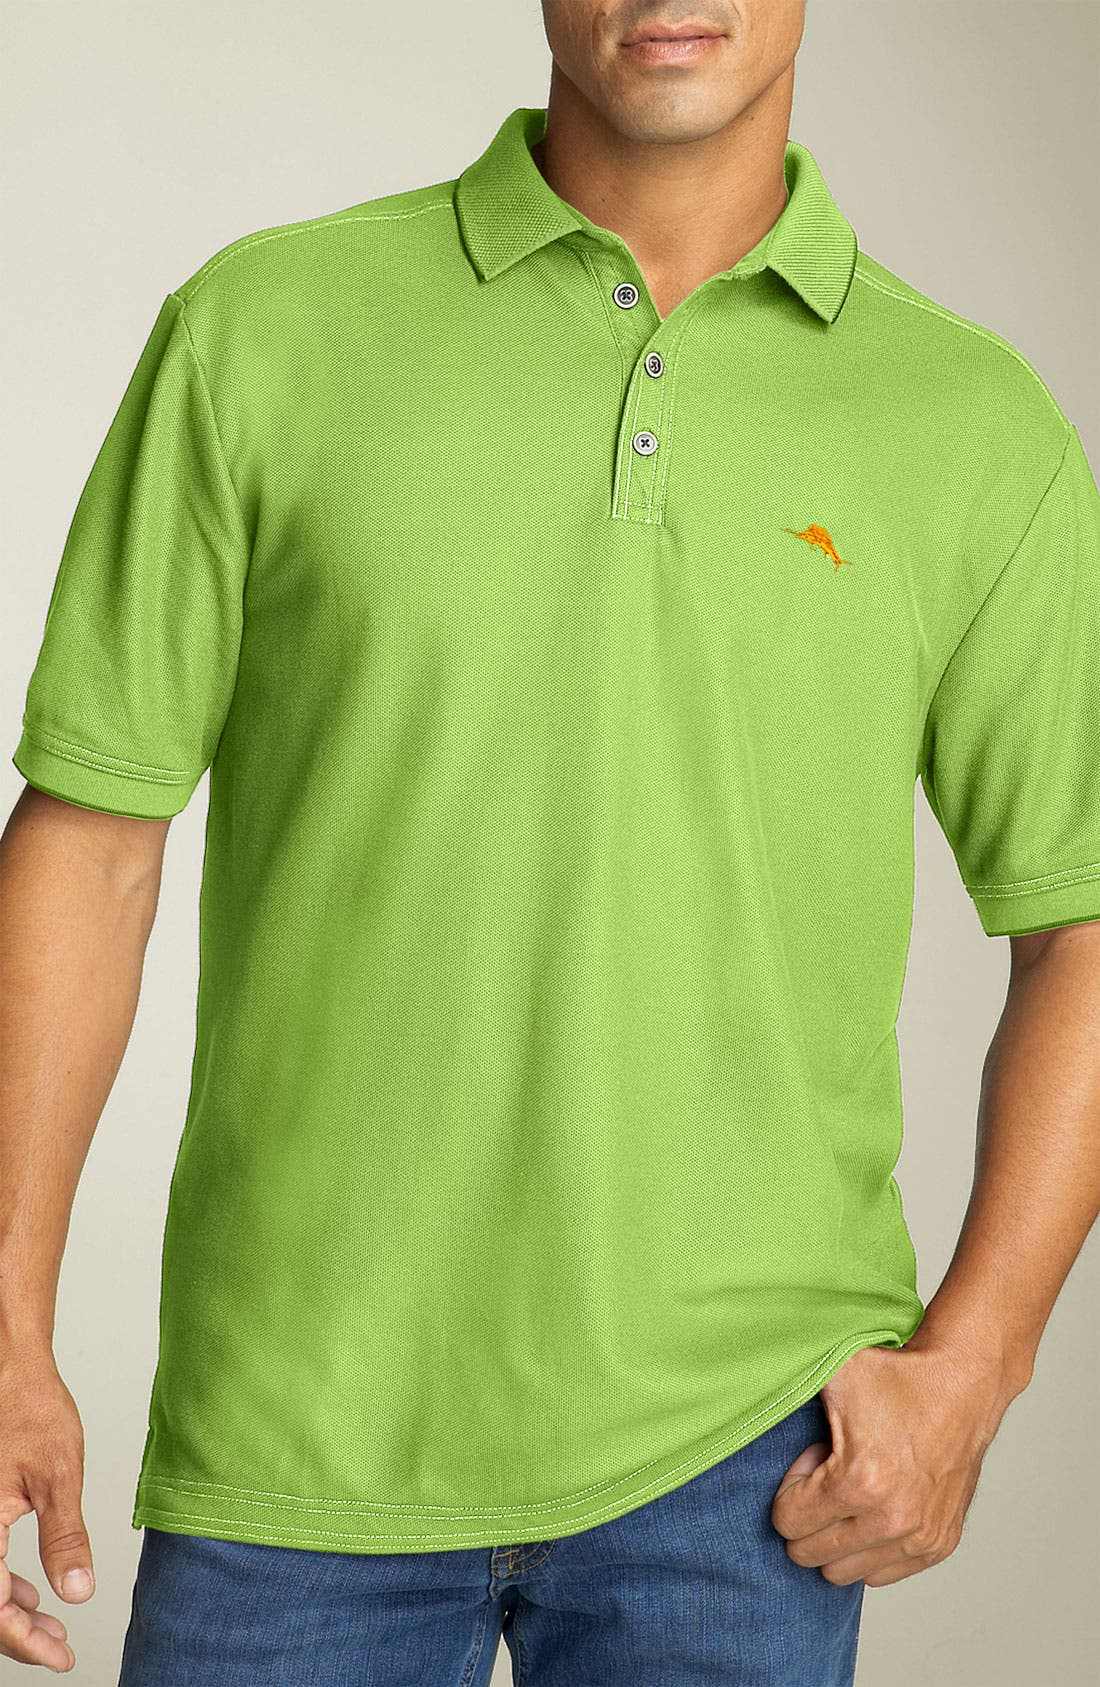 'The Emfielder' Original Fit Piqué Polo,                             Main thumbnail 35, color,